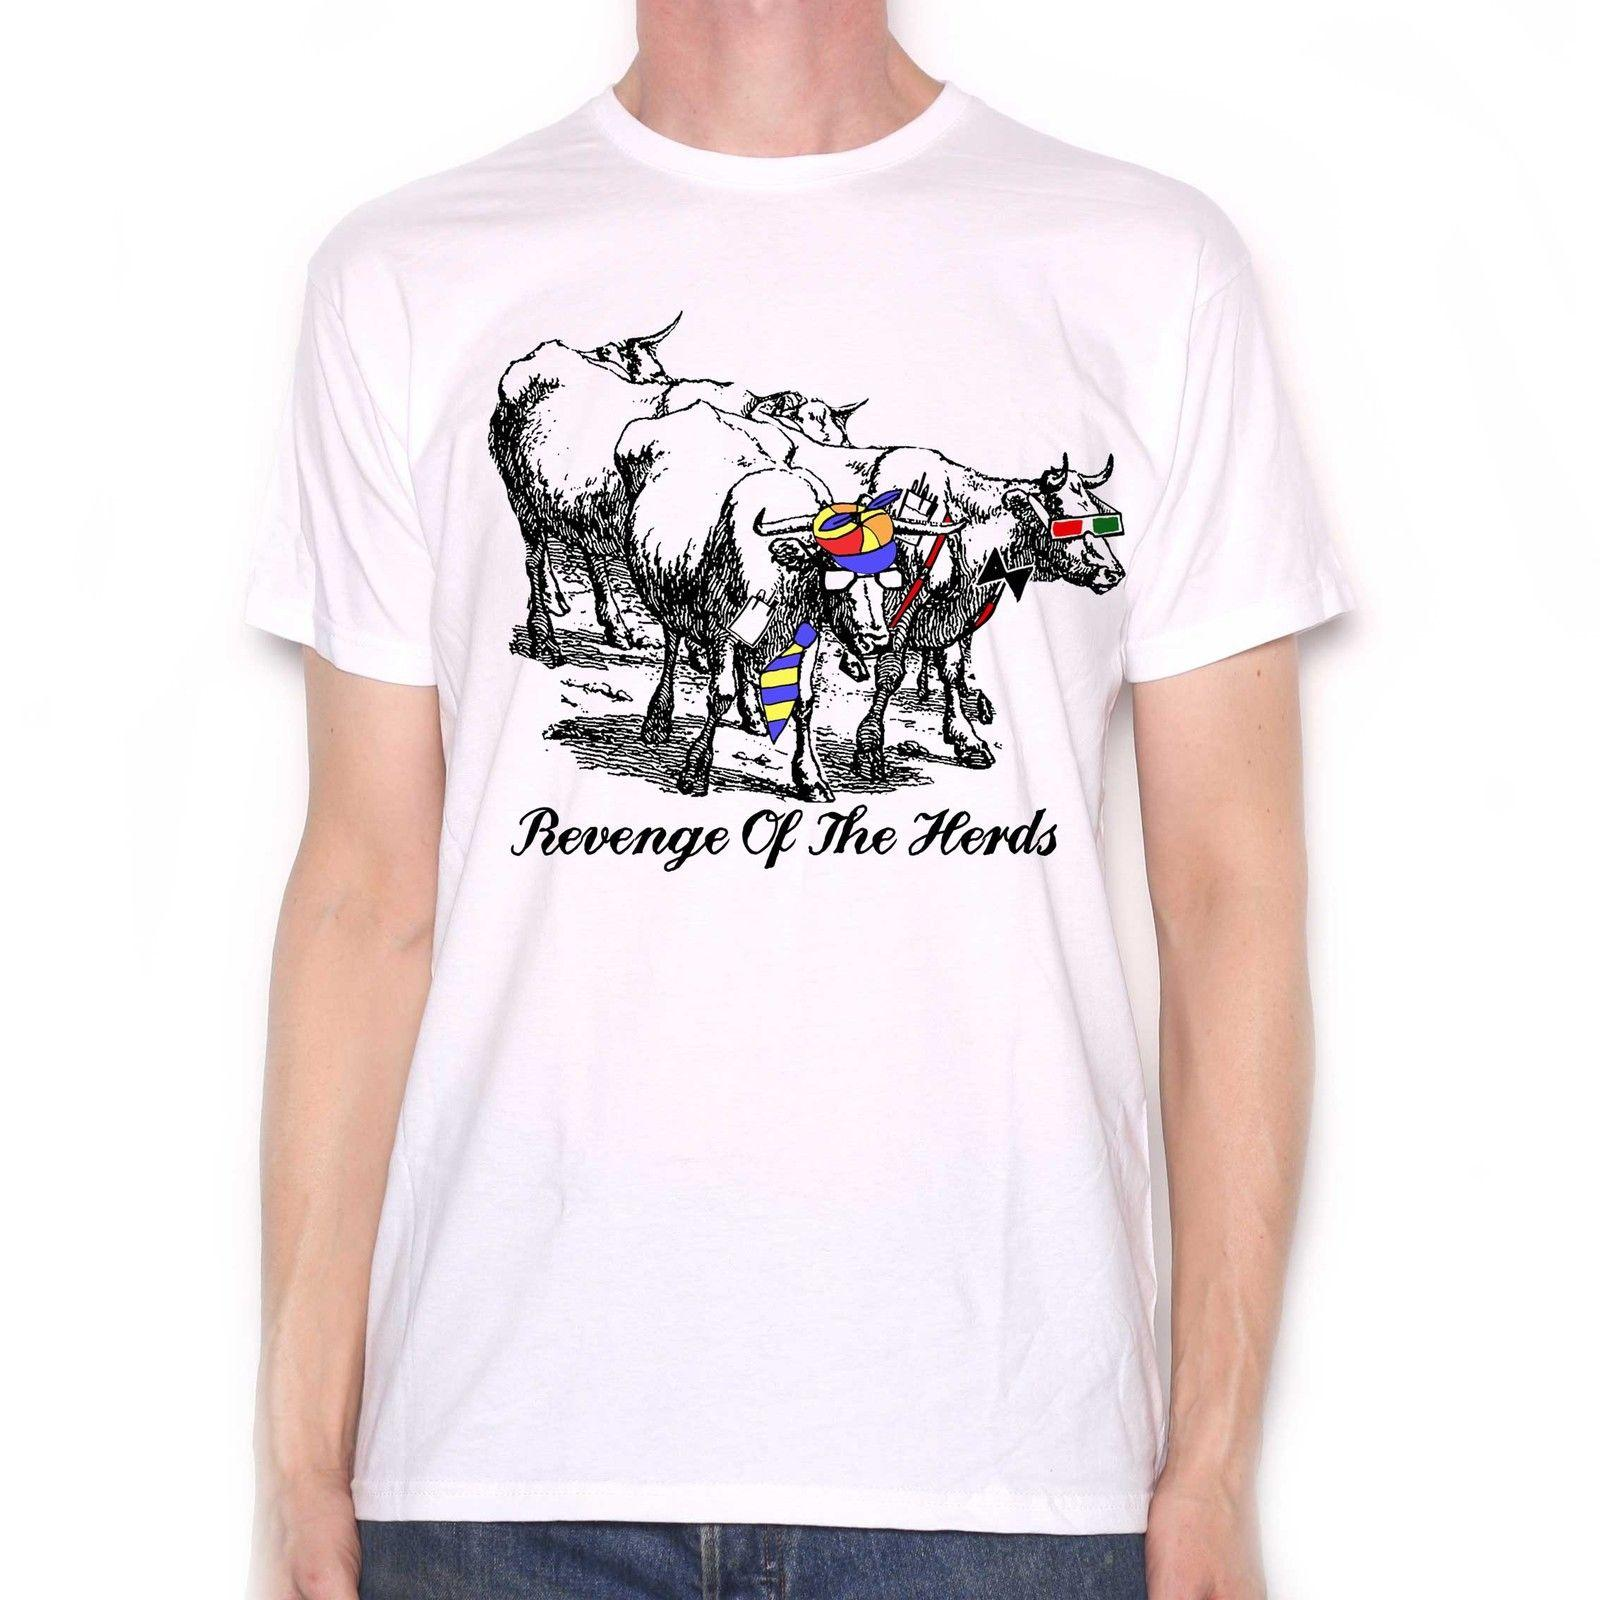 788e32c9 Revenge Of The Herds T Shirt Cow Bovine Old Skool Comedy T Shirt Graphic  Design 2018 High Quality Brand Men T Shirt Summer Hot Sale Black Shirts Long  Sleeve ...